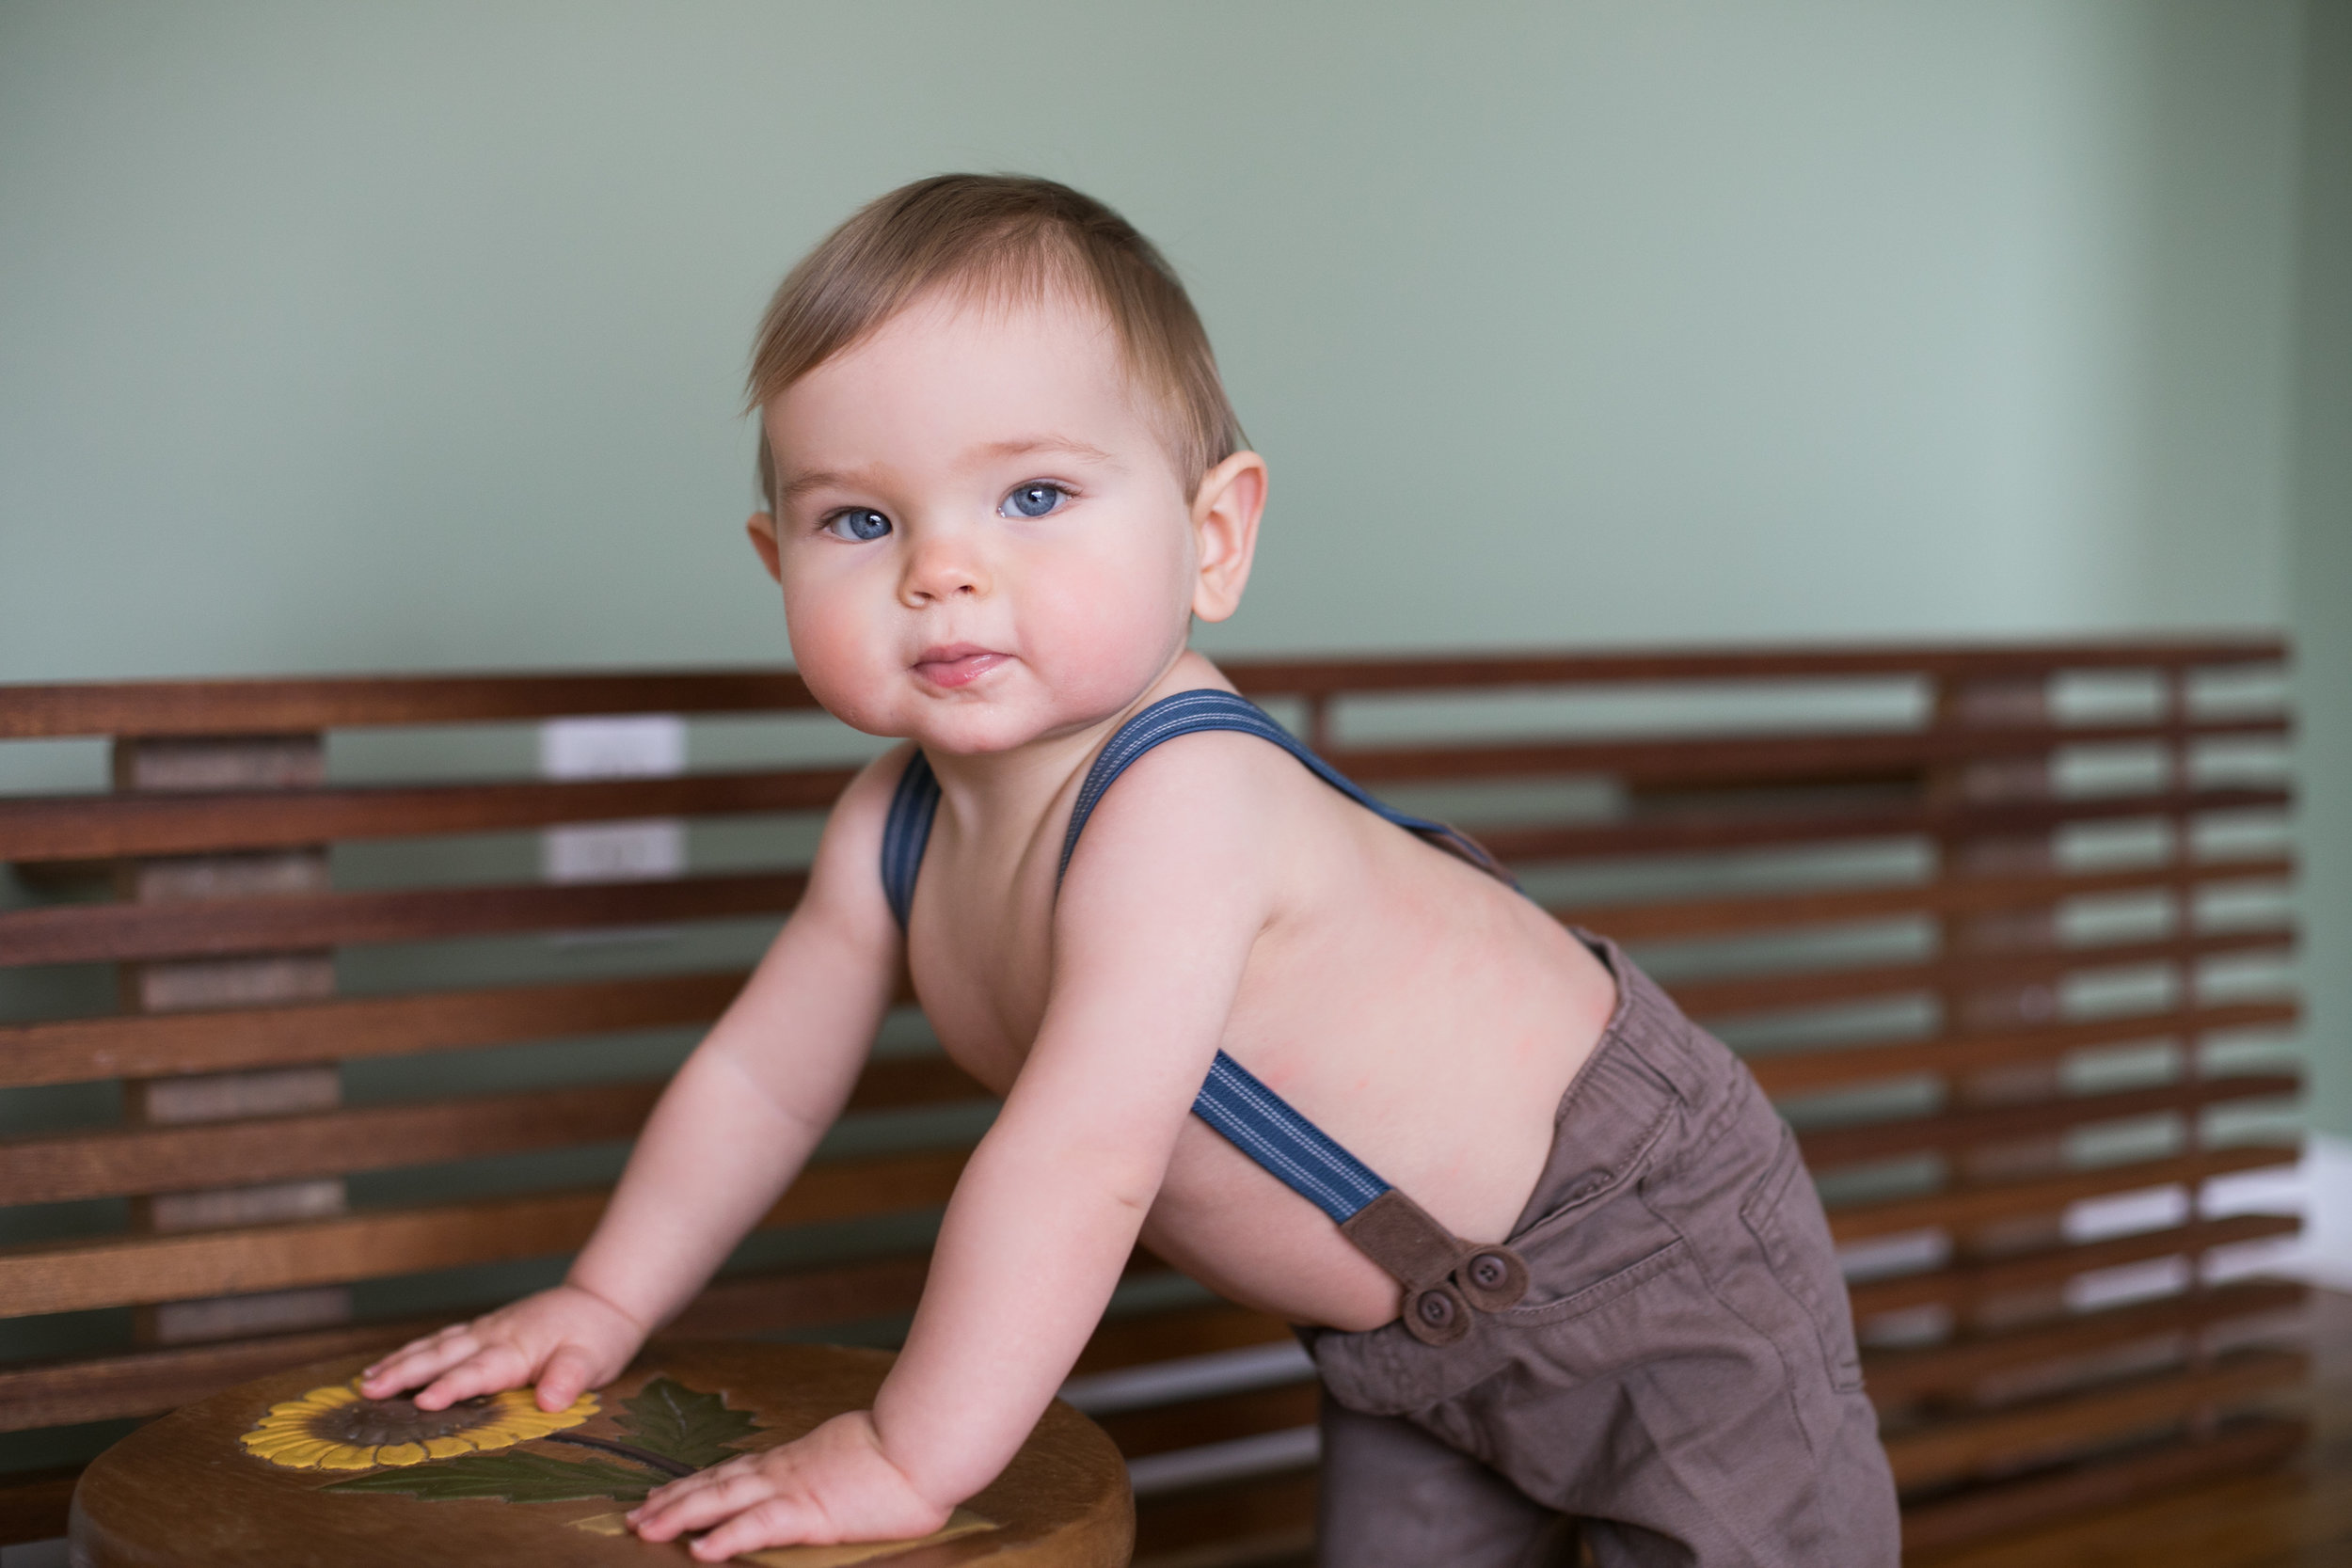 Babyinsuspenders_marylandportraitphotographer.jpg